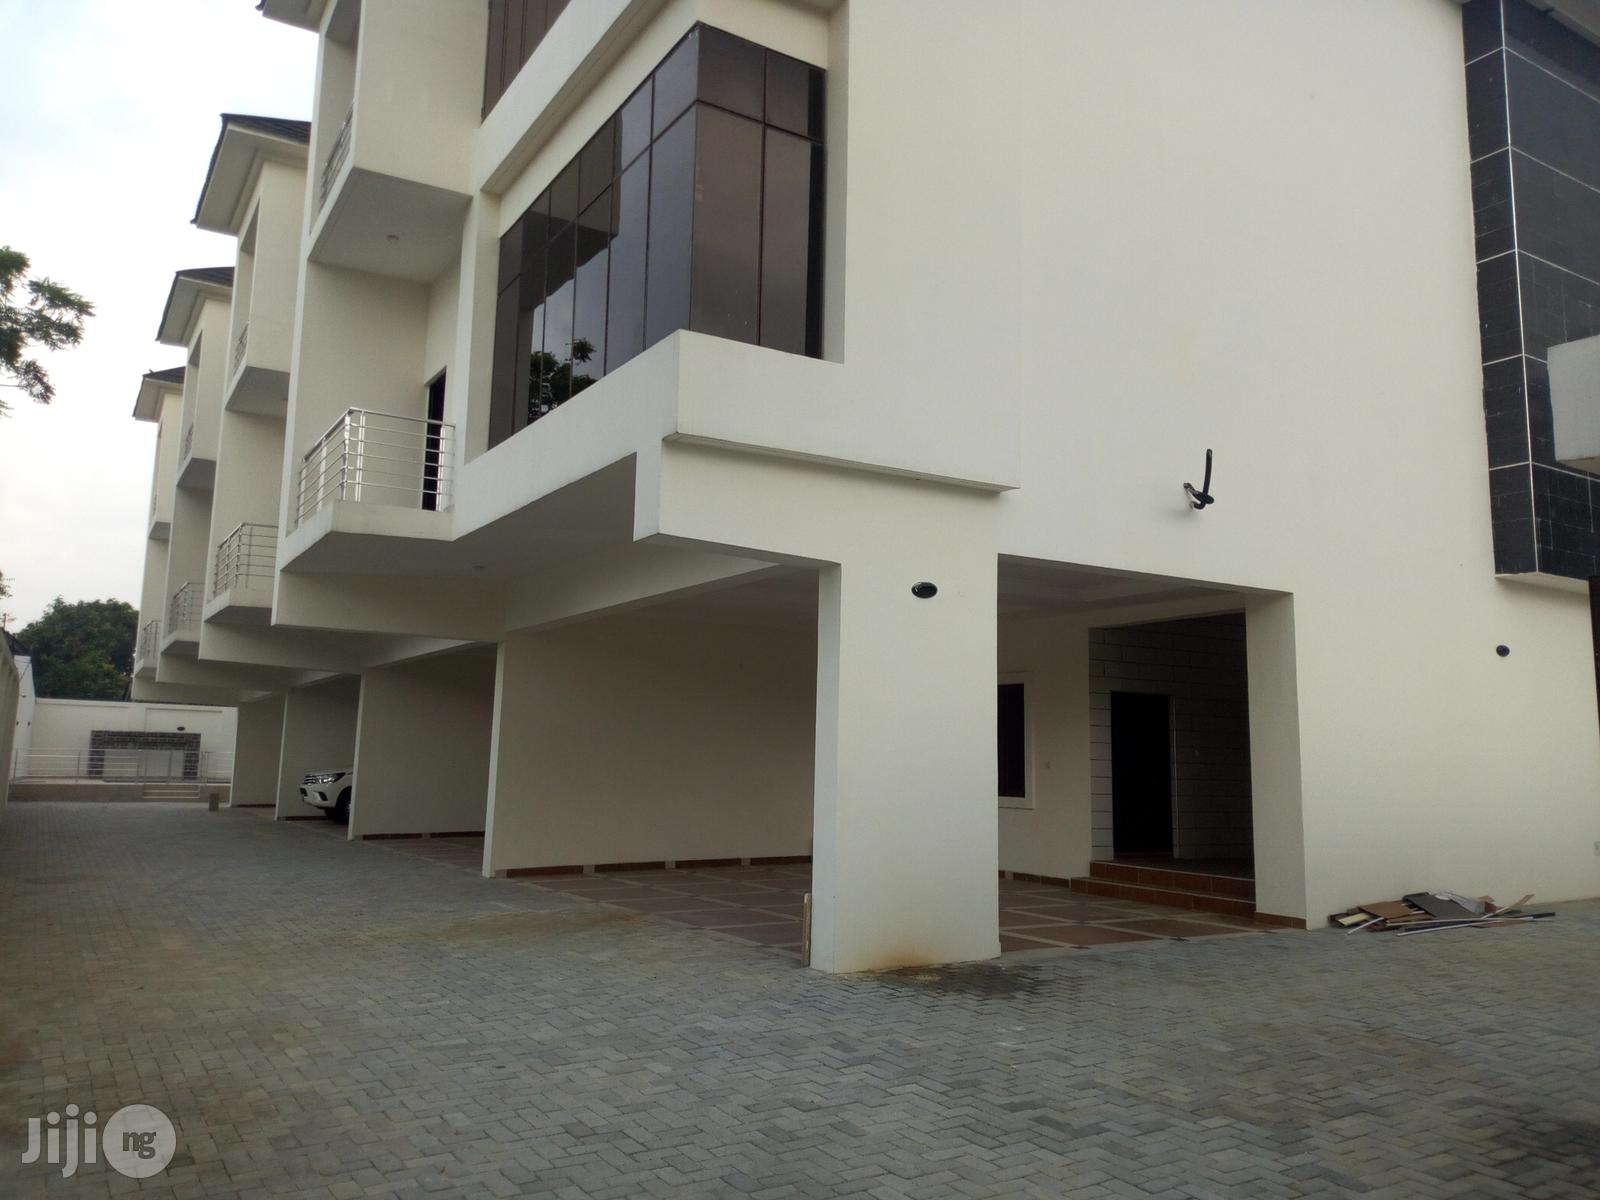 Newly Built 4 Bedroom Townhouse With an Attached Boys Quarters on 3 Split Floors Off Bishop Aboyode Cole Street, Victoria Island, Lagos.